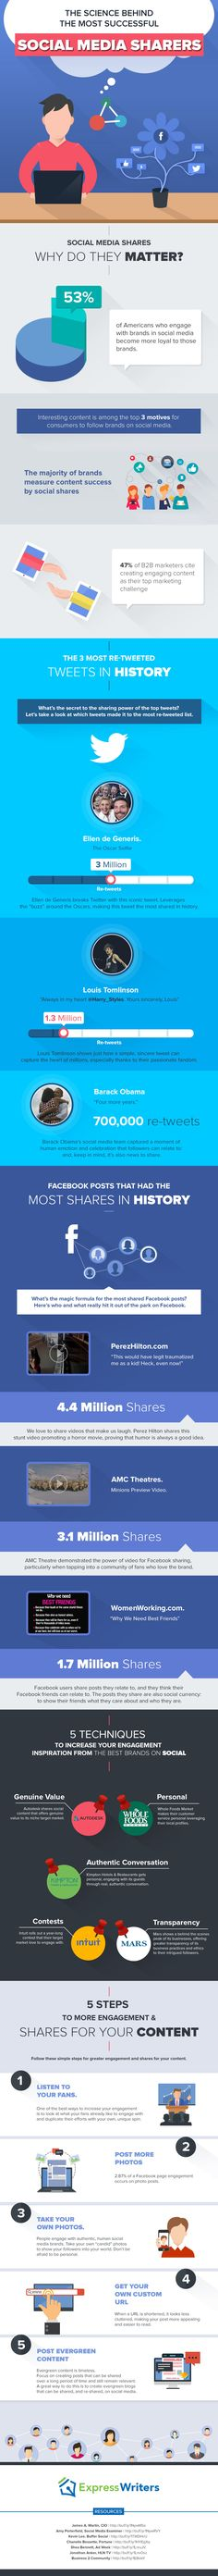 The Science Behind the Most Successful Social Media Campaigns & Sharers - #Infographic